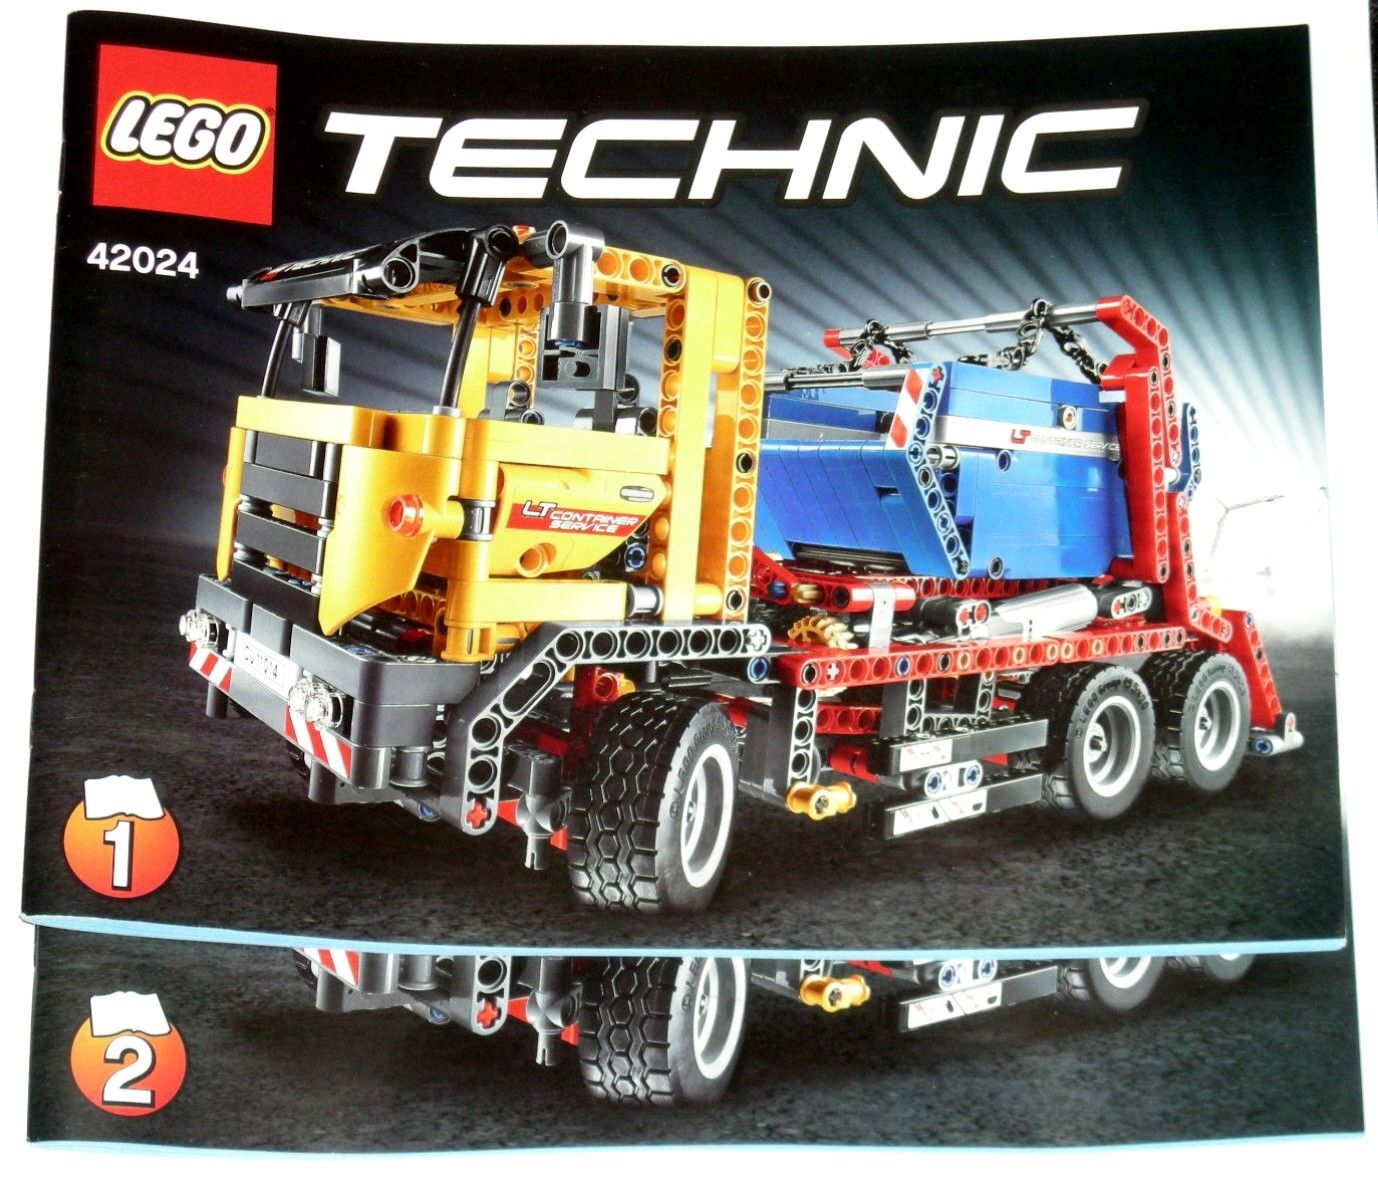 Lego Technic Container Truck Original Instructions Only 42024